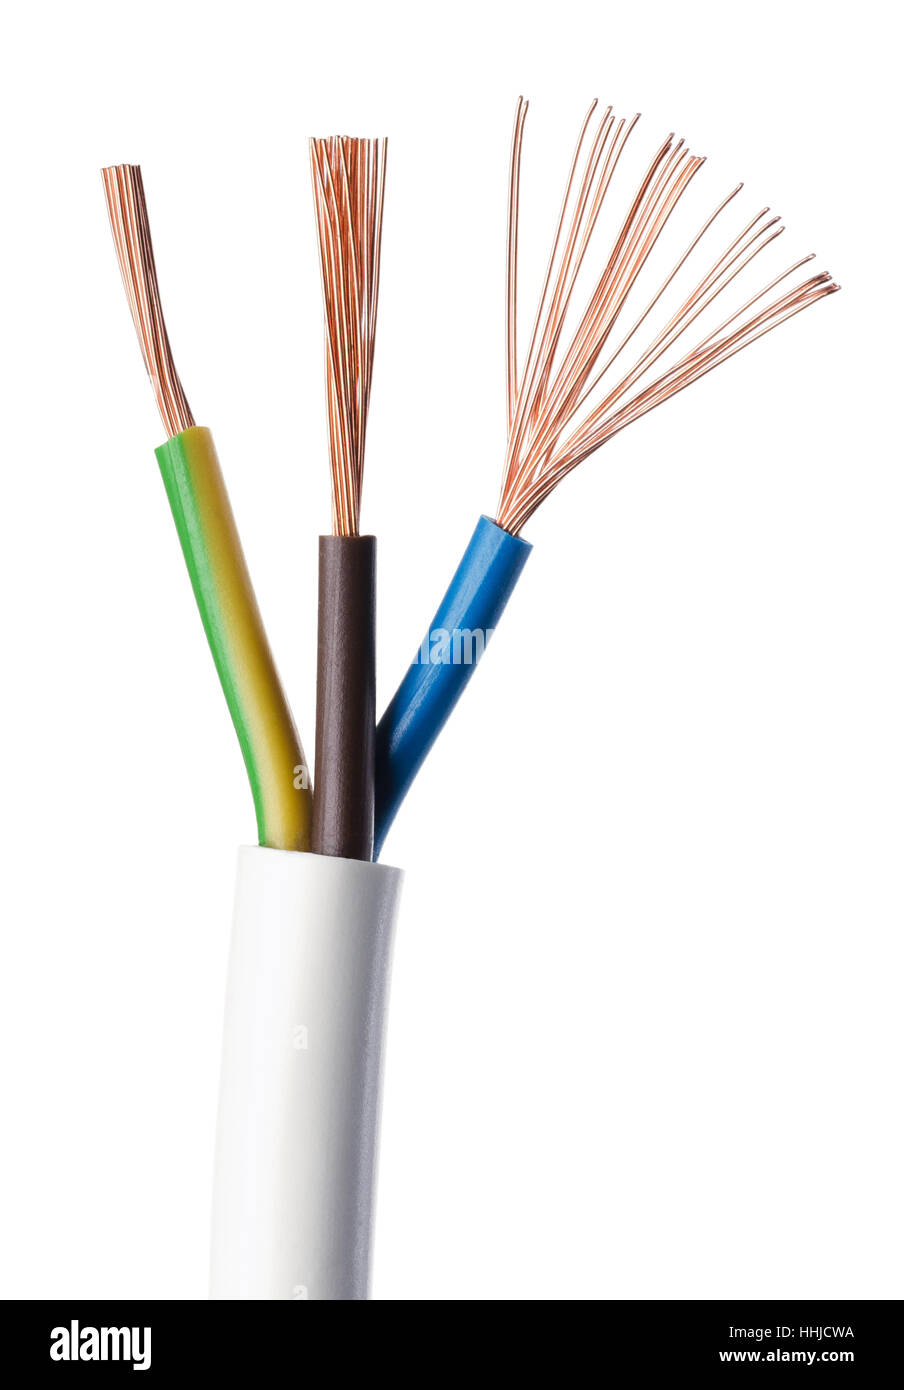 Stripped Wire Stock Photos & Stripped Wire Stock Images - Alamy